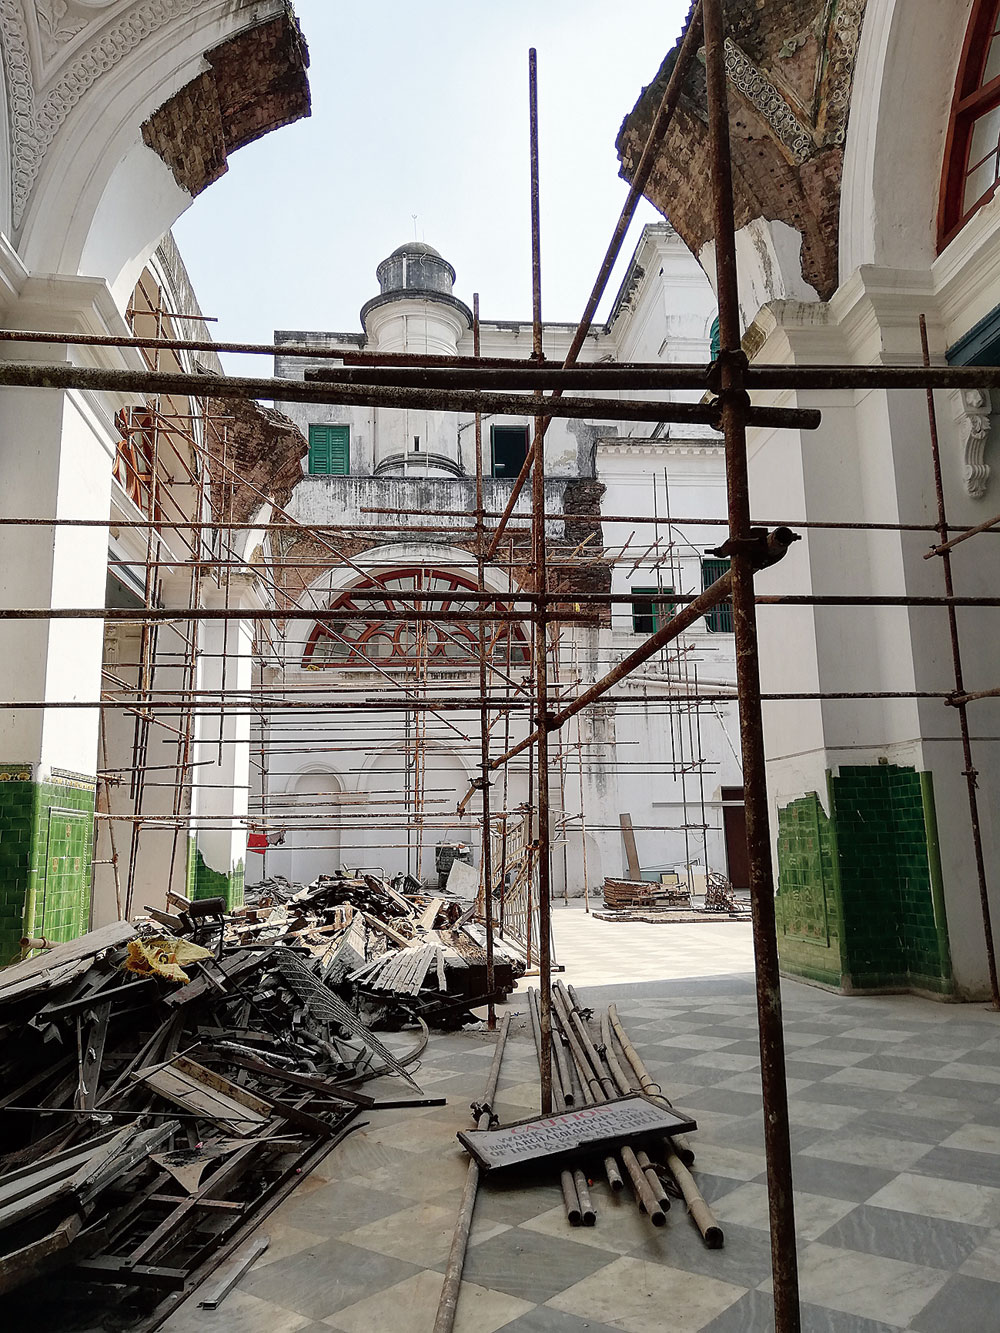 Renovation work is on at the Currency Building, which used to house the office of issue and exchange of government paper currency